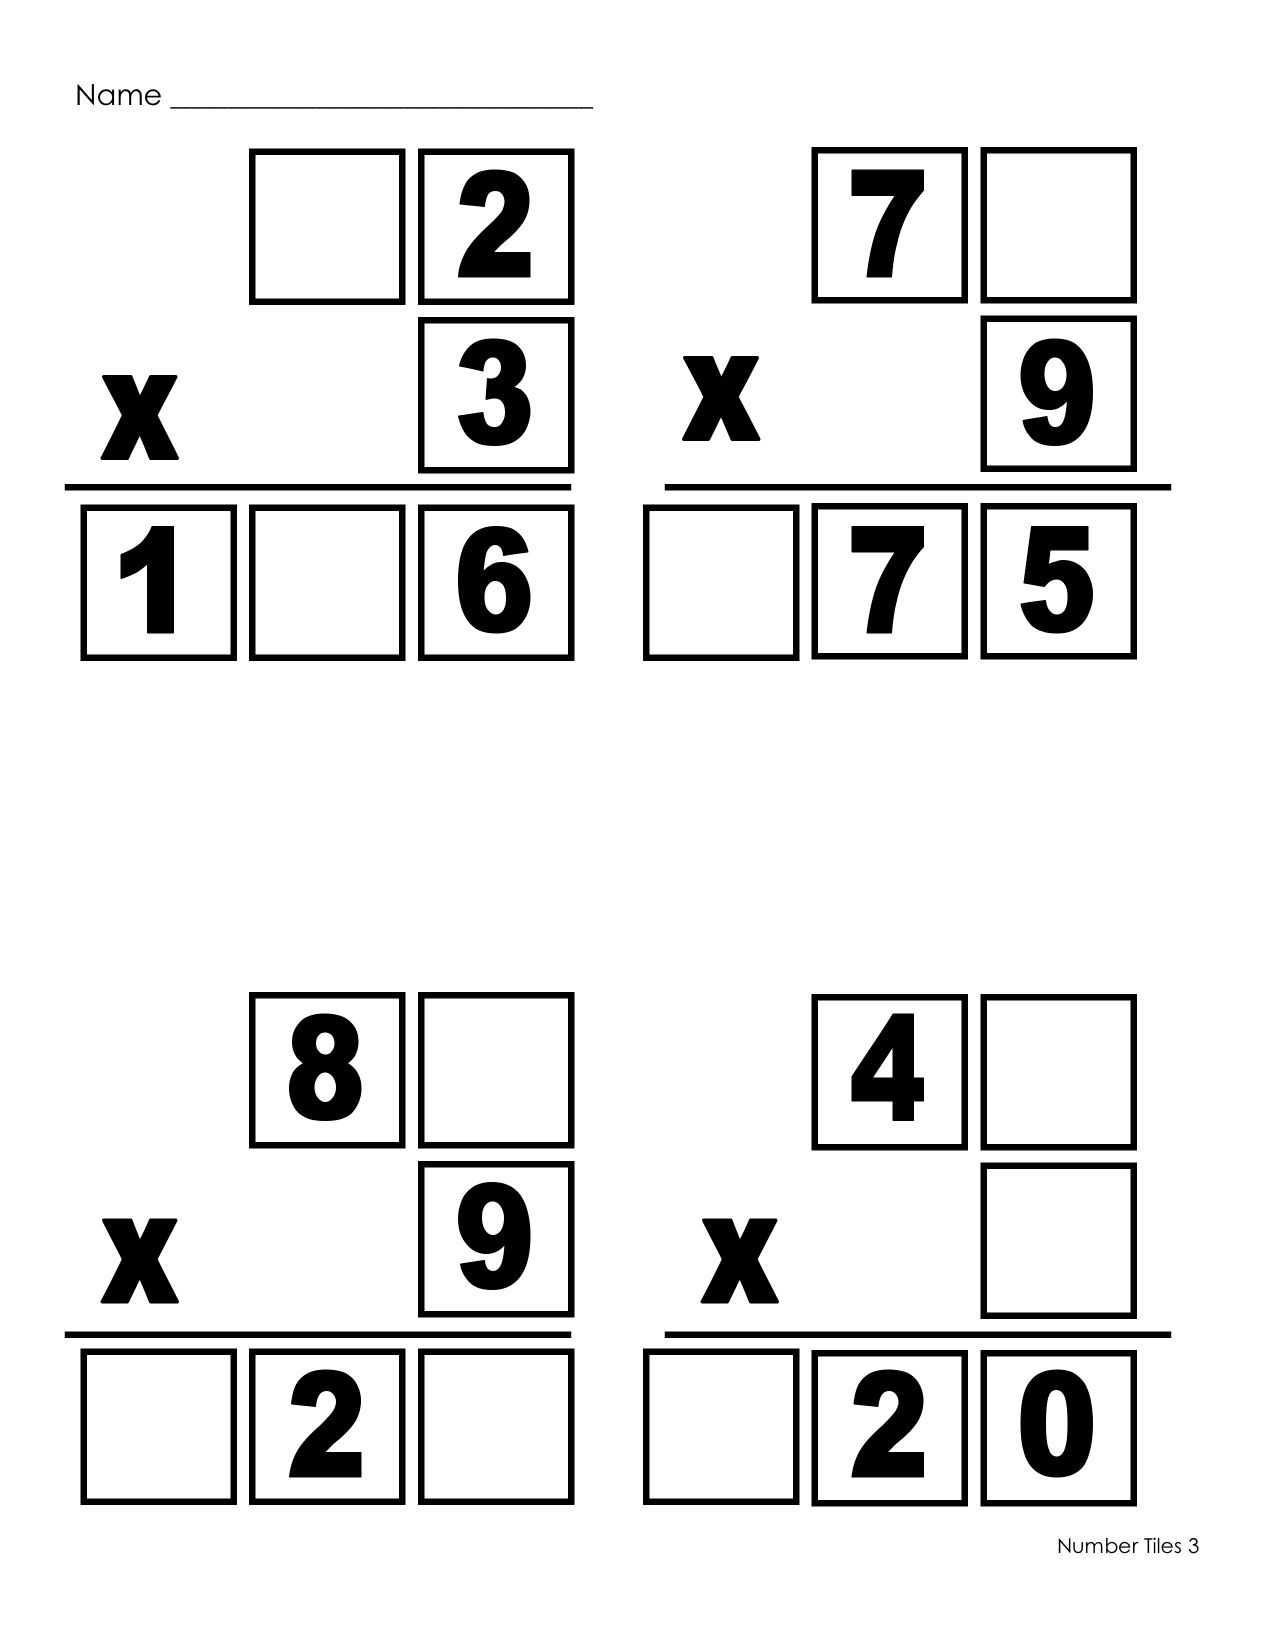 Multiplication Number Tiles Use The Numbers 0 9 One Time Each To Fill In The Blanks Printable Math Worksheets Teaching Math Middle School Math